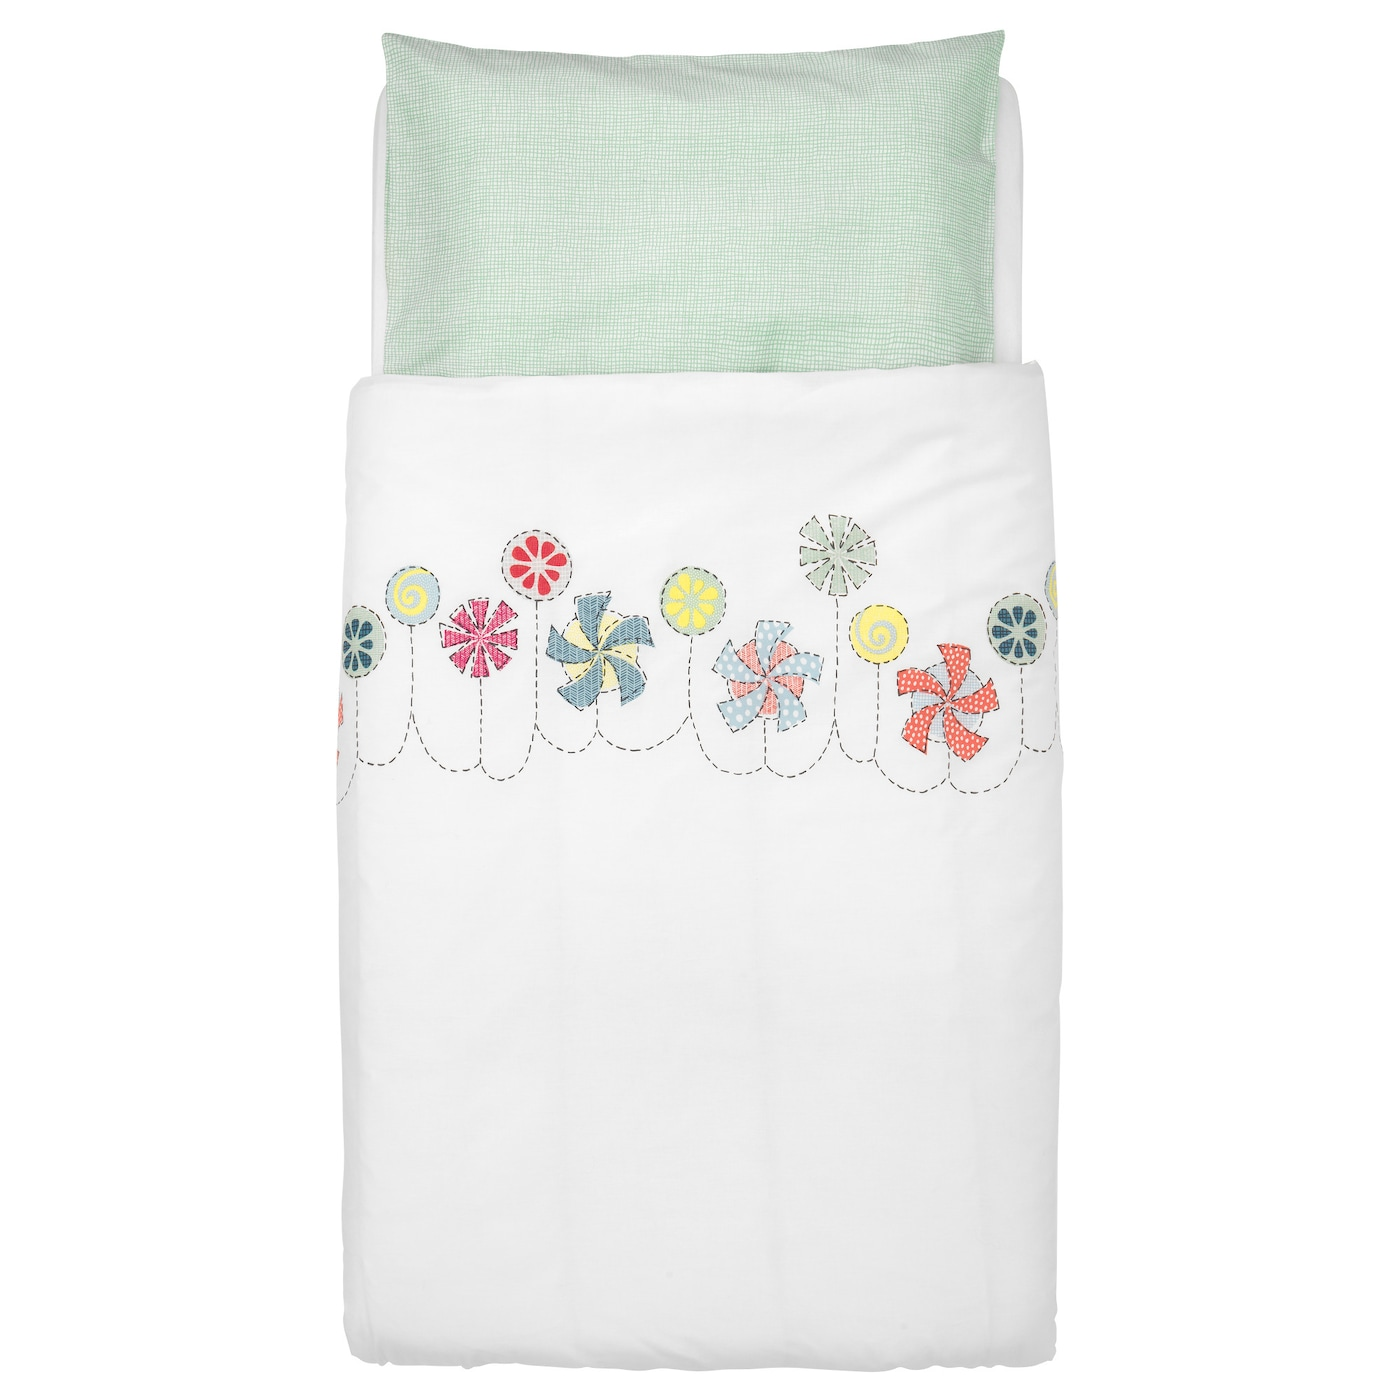 IKEA BUSSIG quilt cover/pillowcase for cot